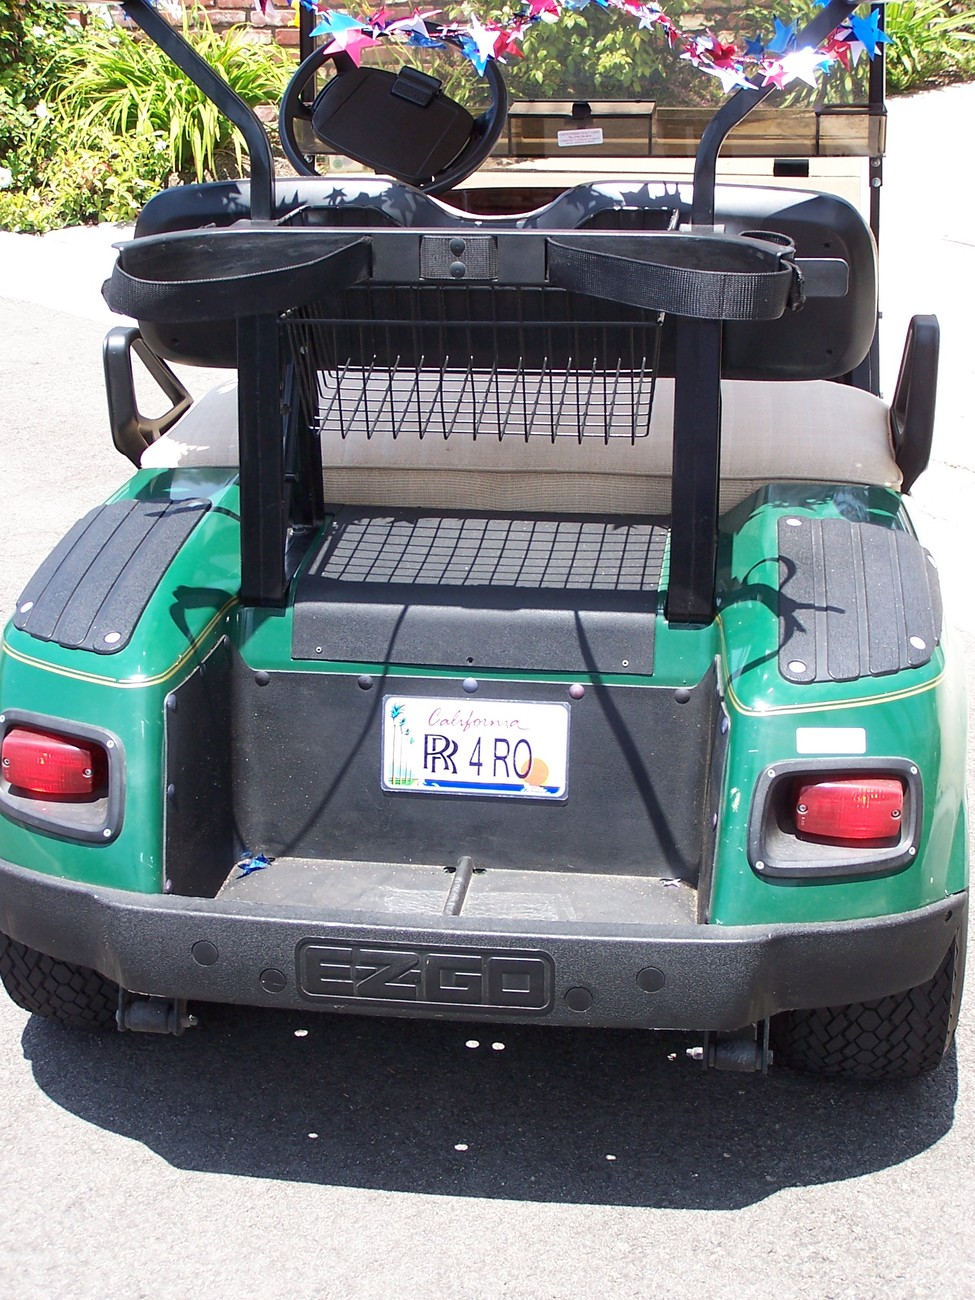 Custom Personalized Nebraska golf cart, mobility scooter, go cart license plate